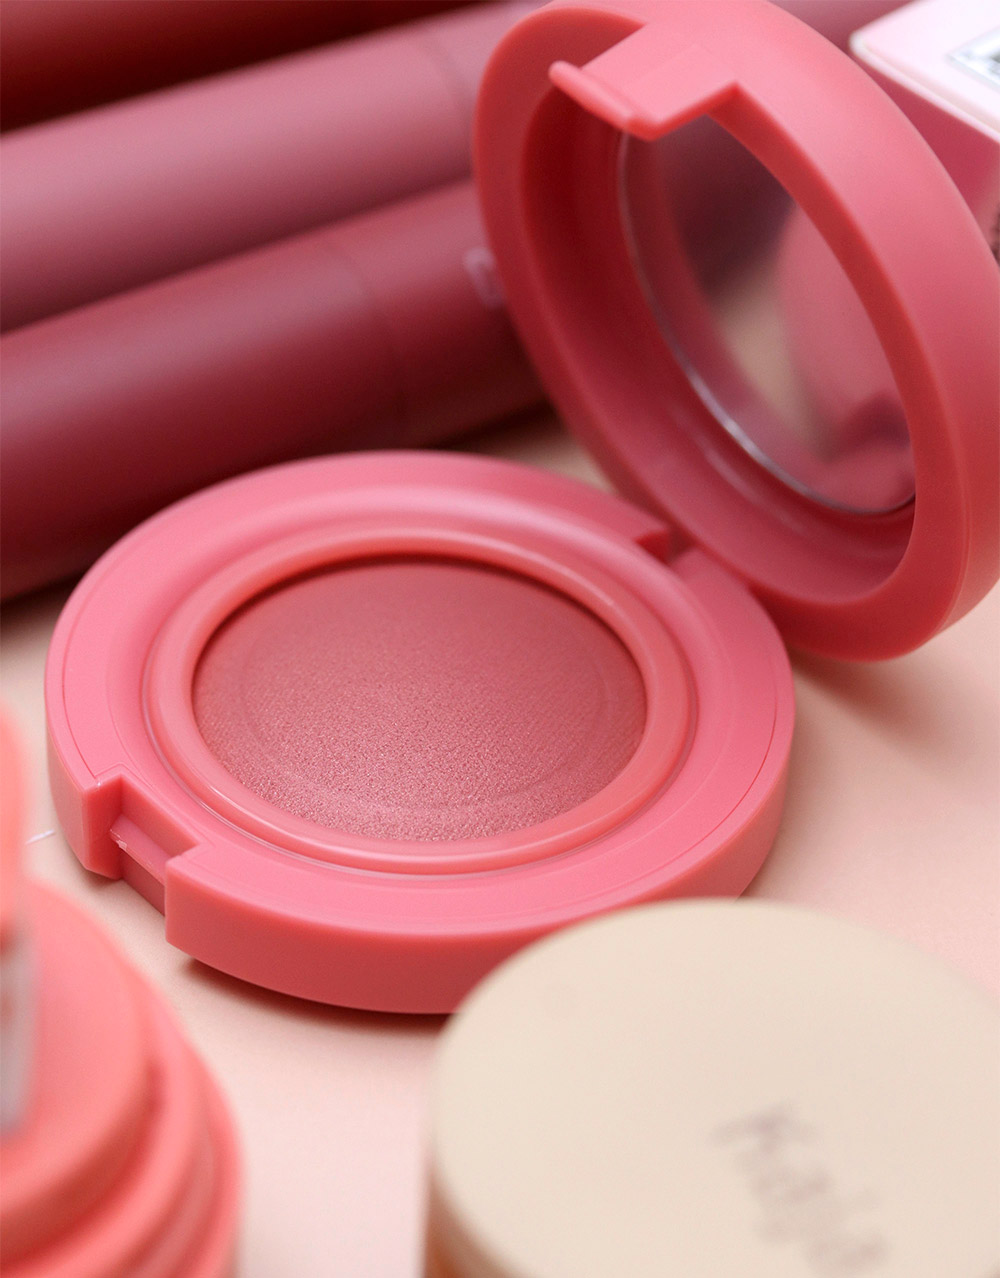 kaja beauty mochi pop bouncy blush